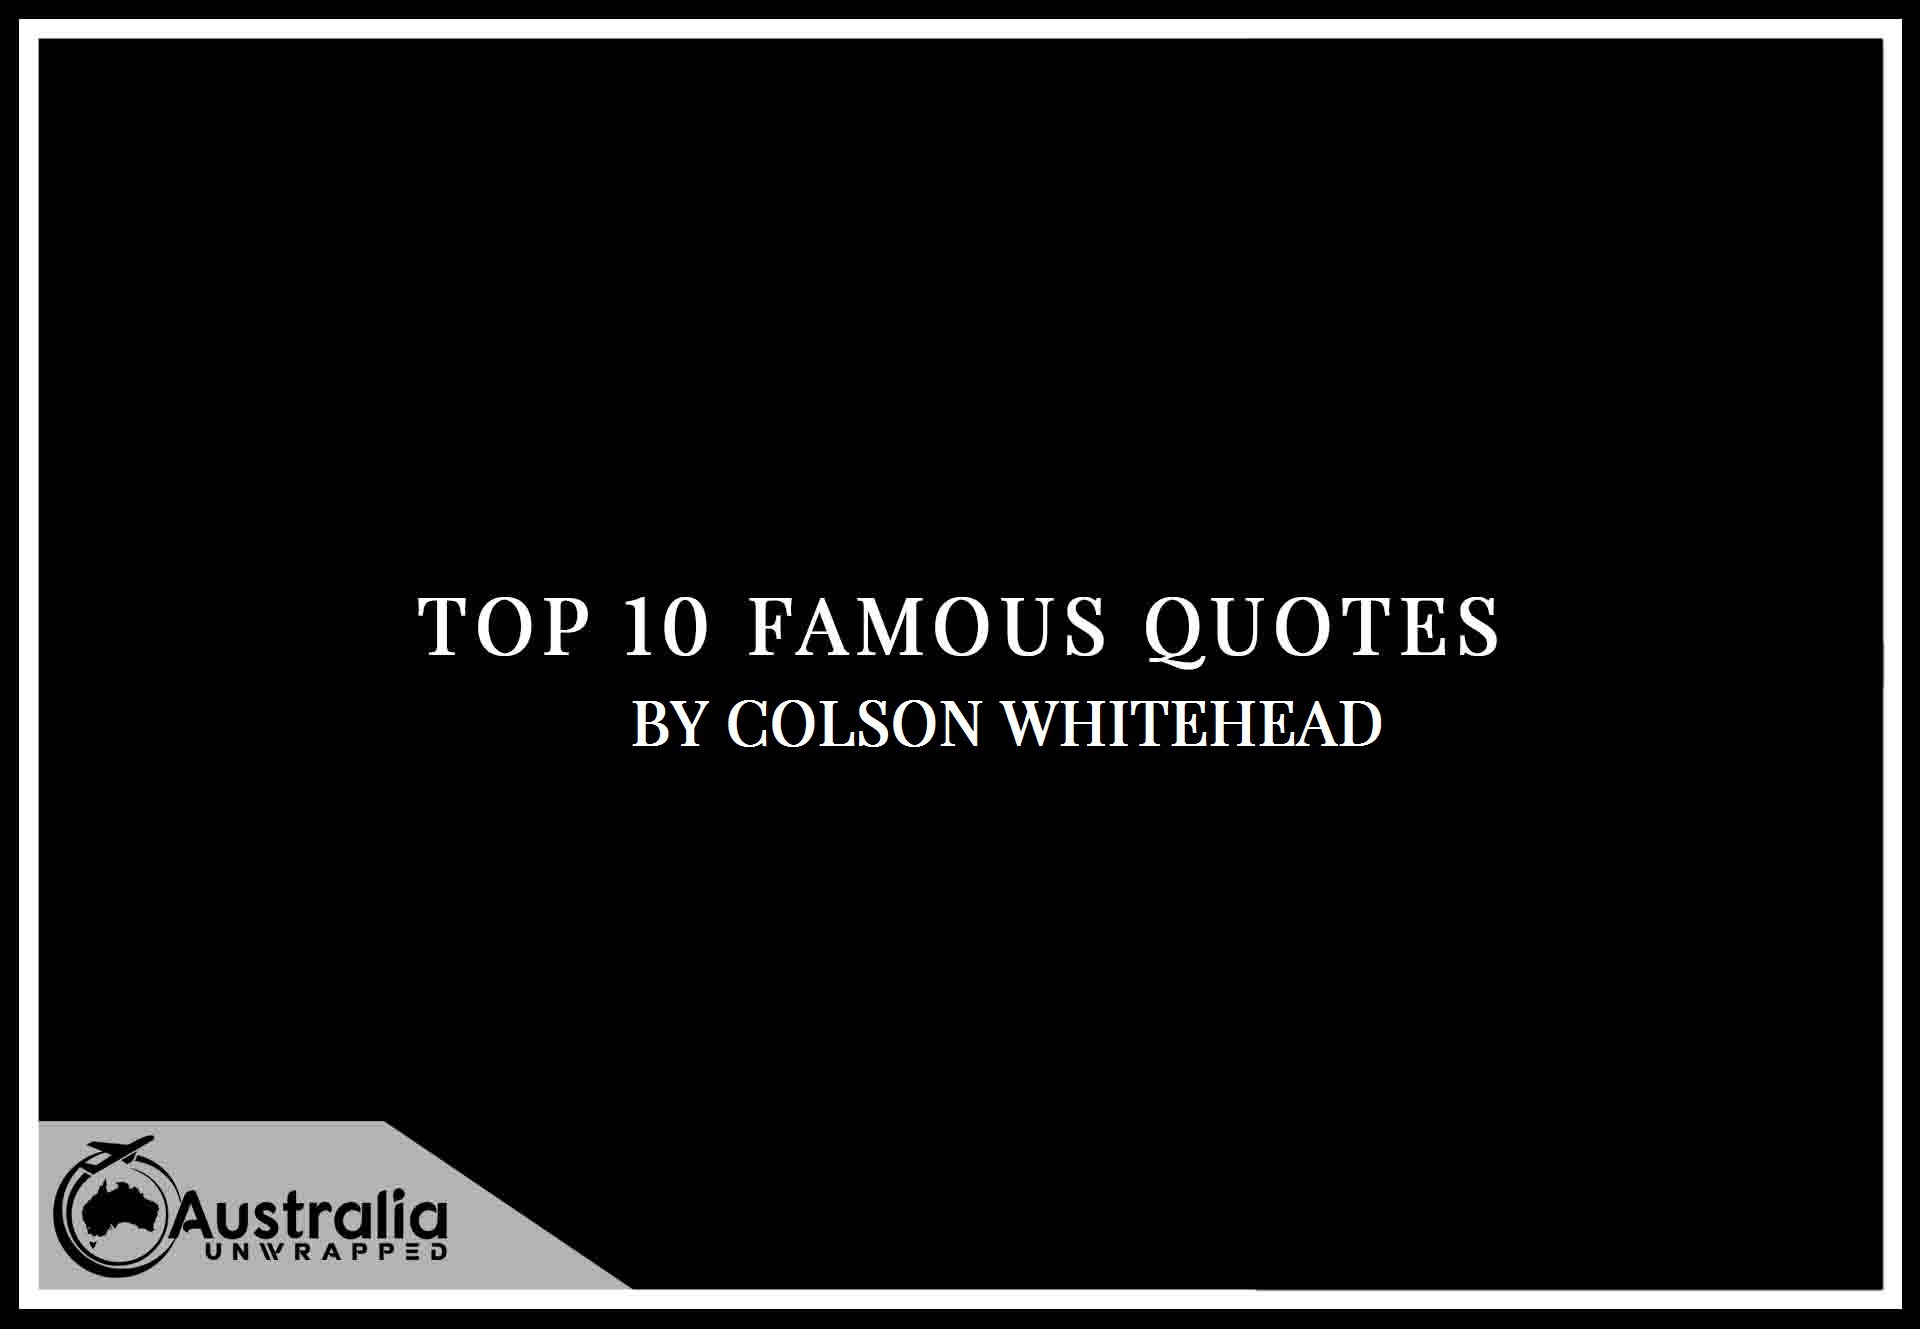 Colson Whitehead's Top 10 Popular and Famous Quotes